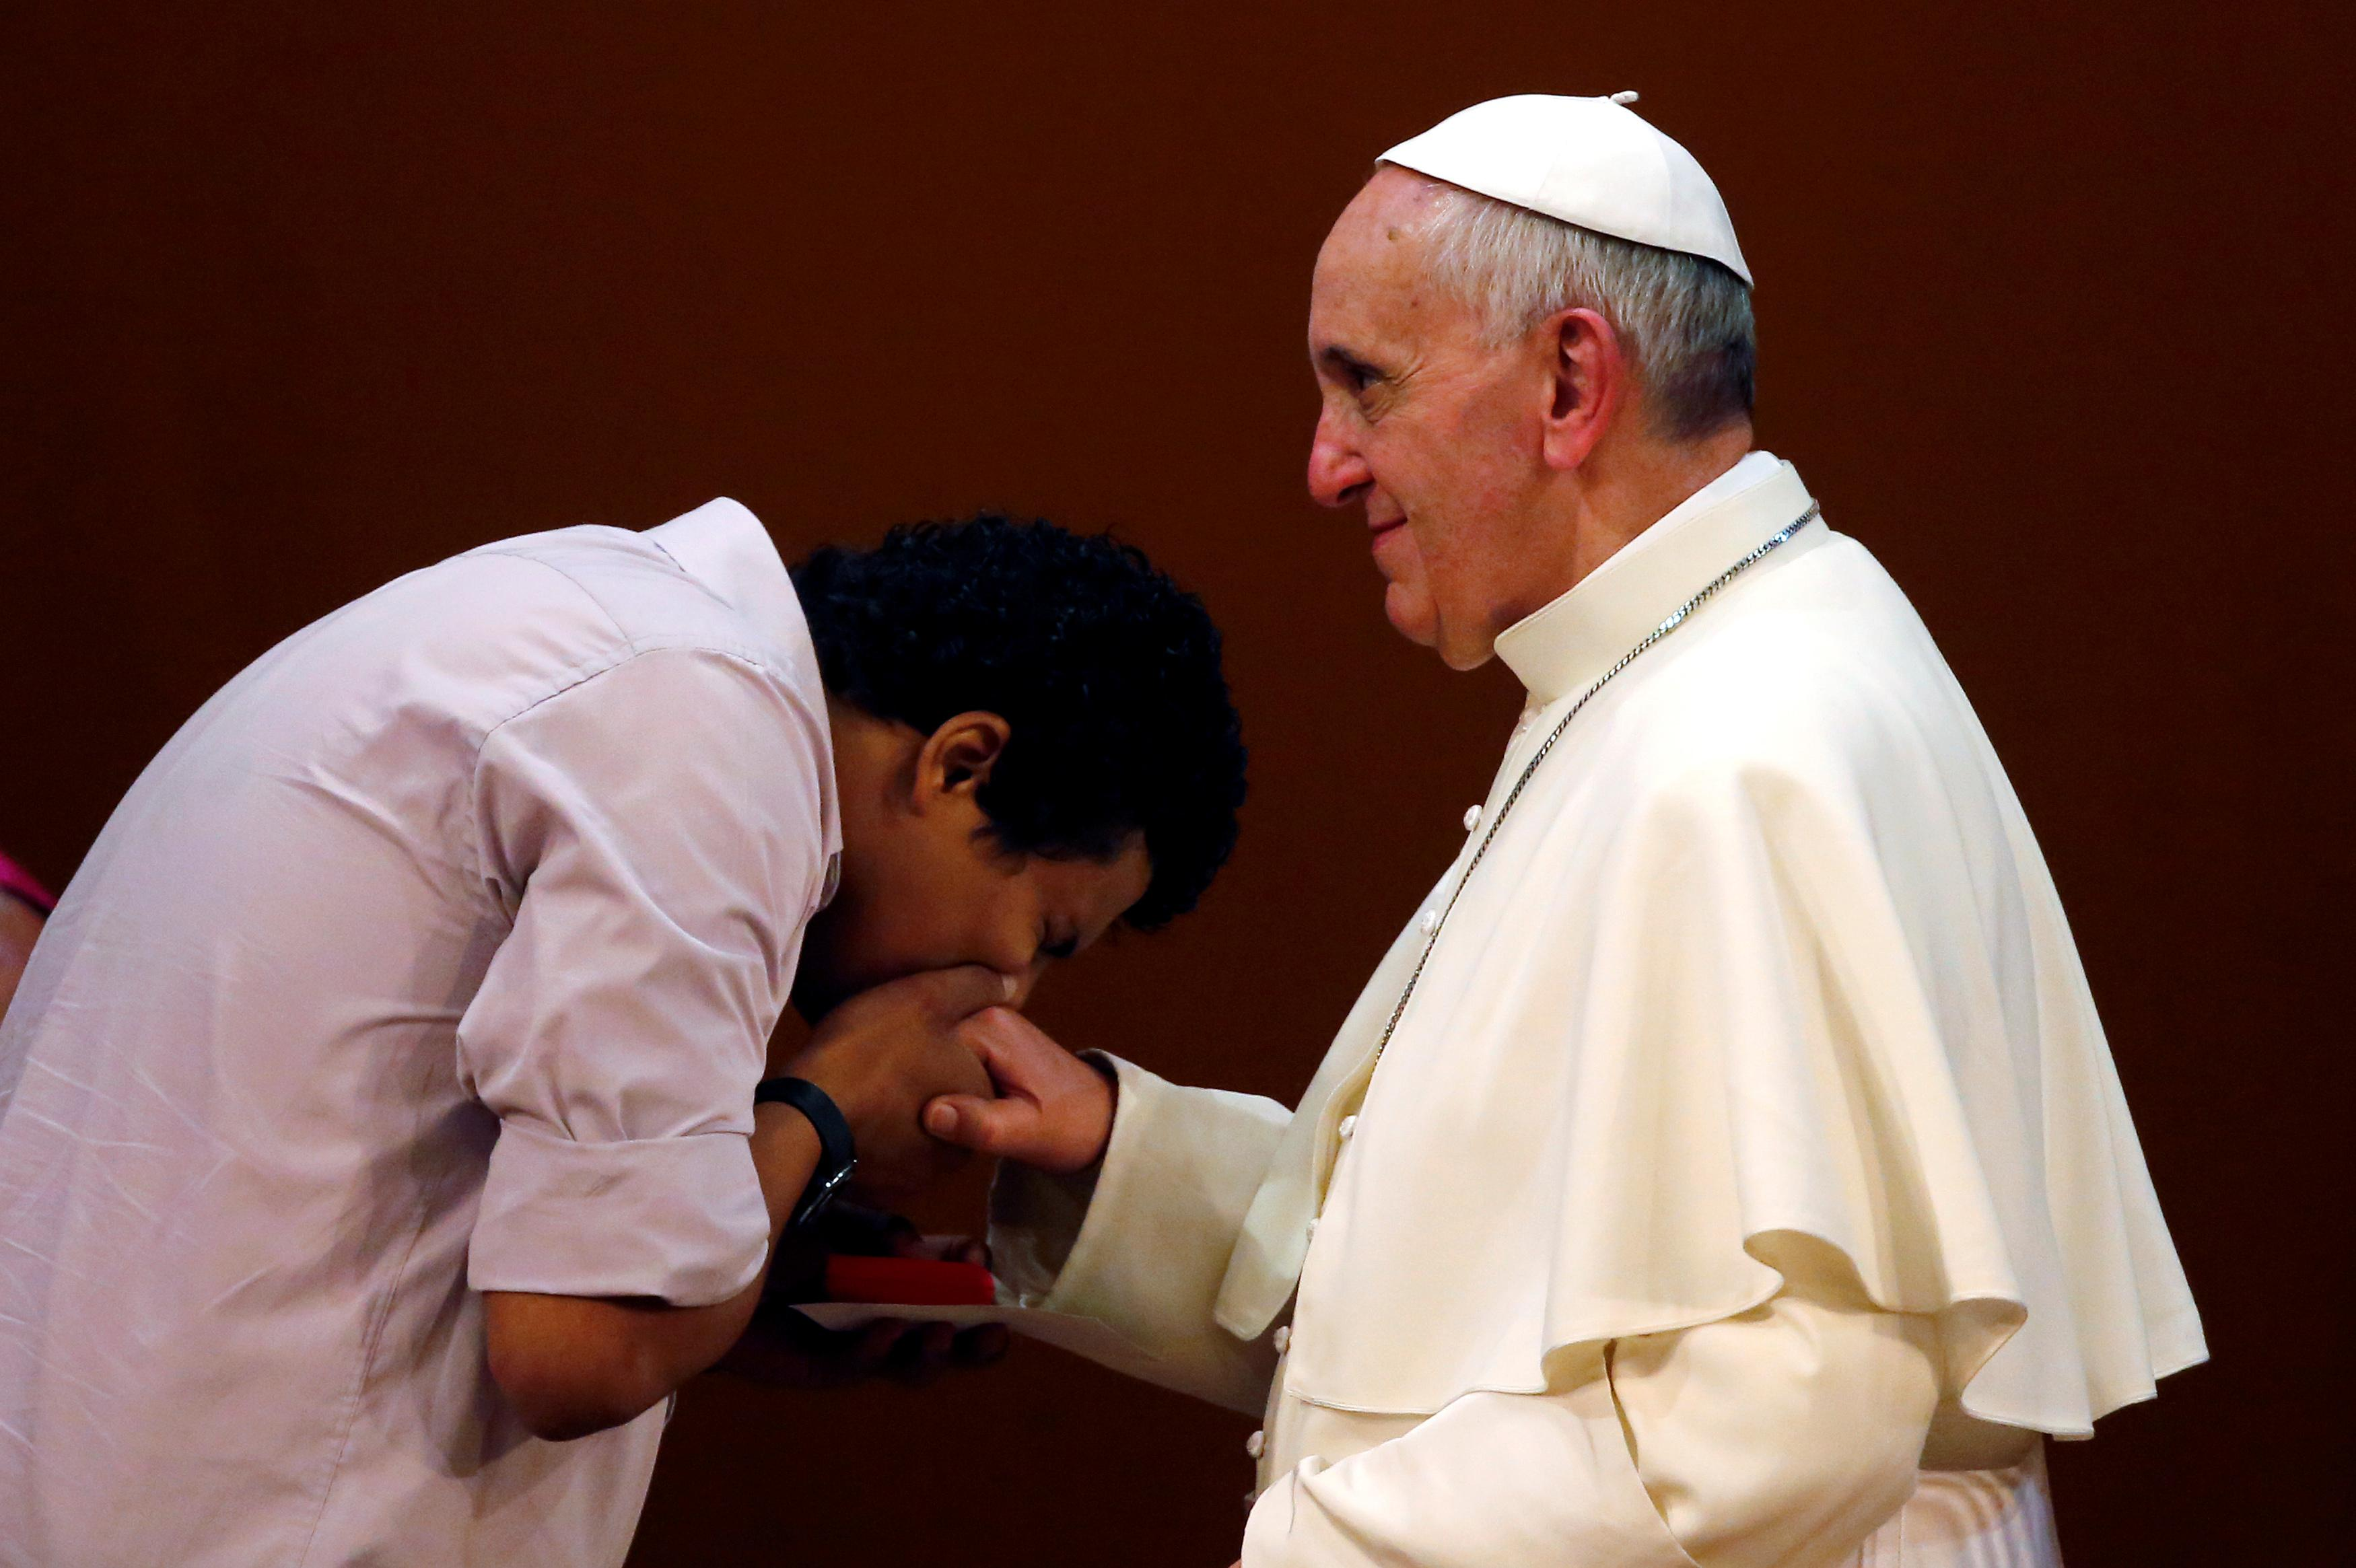 a youth kisses the ring of pope francis during a meeting at the municipal theater in rio de janeiro photo reuters